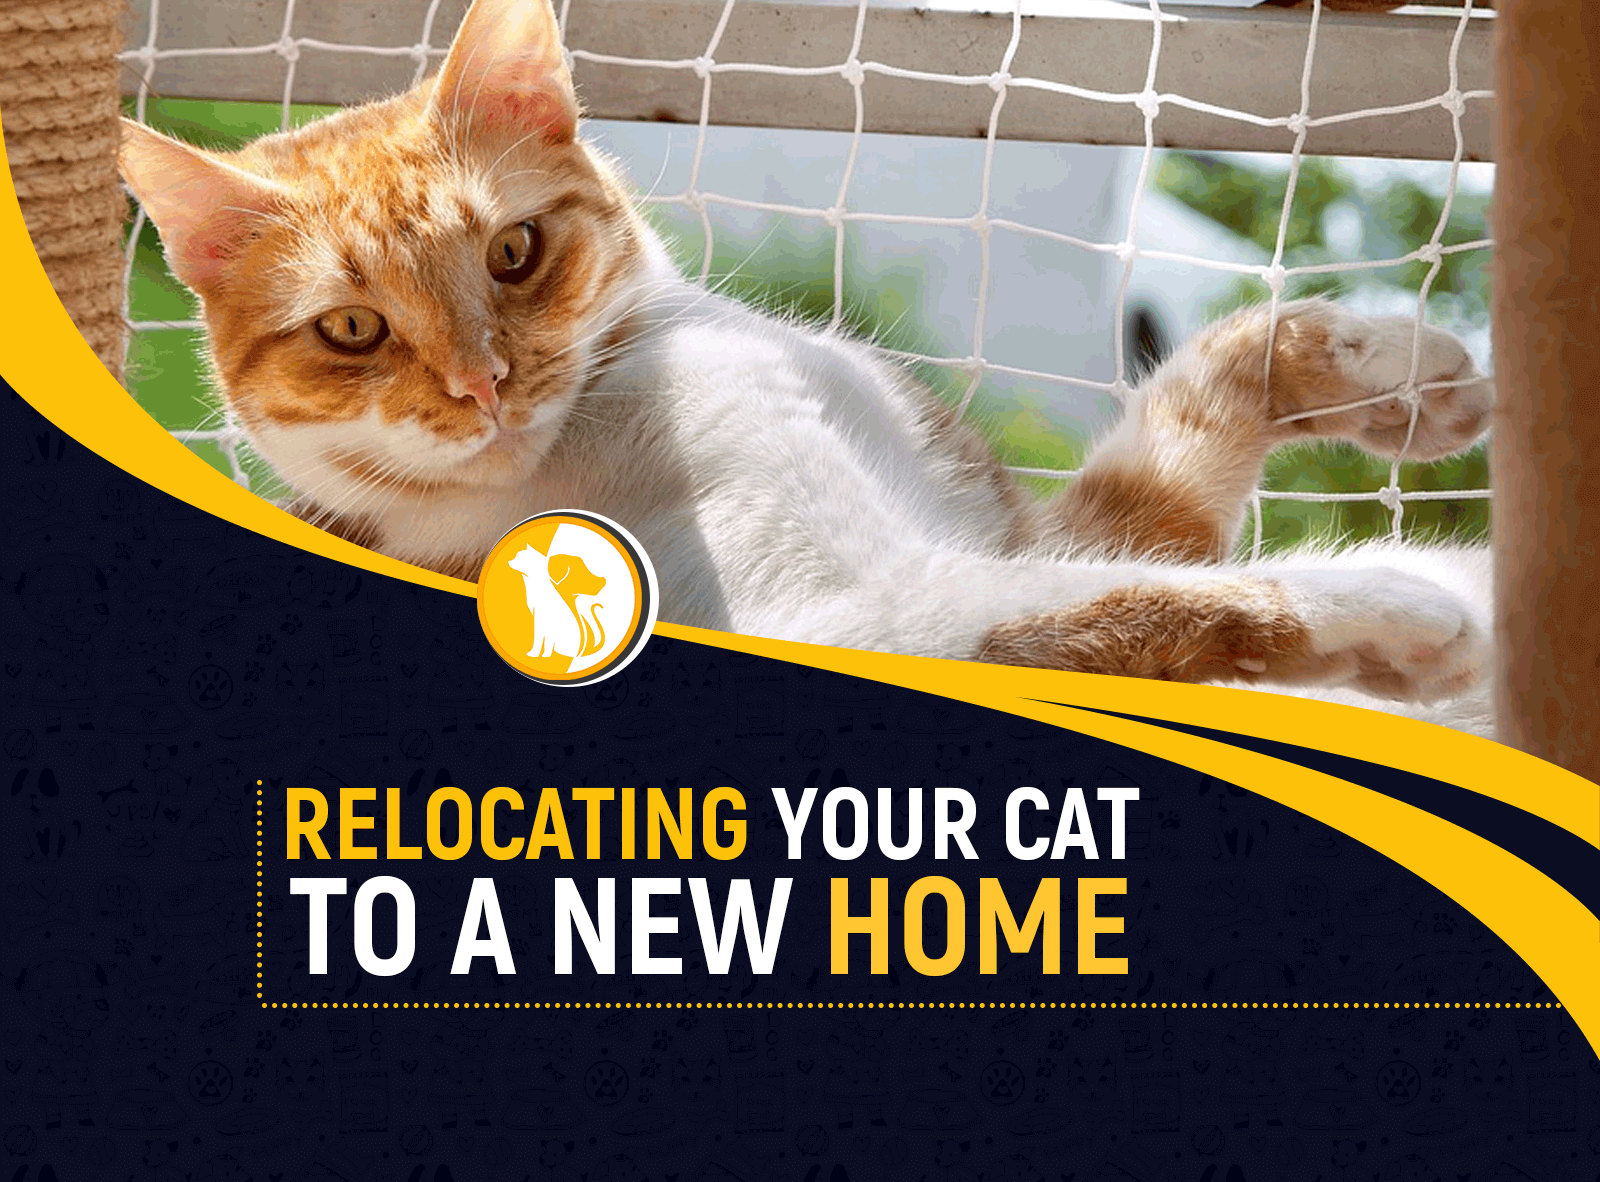 How to Relocate Your Cat to a New Home